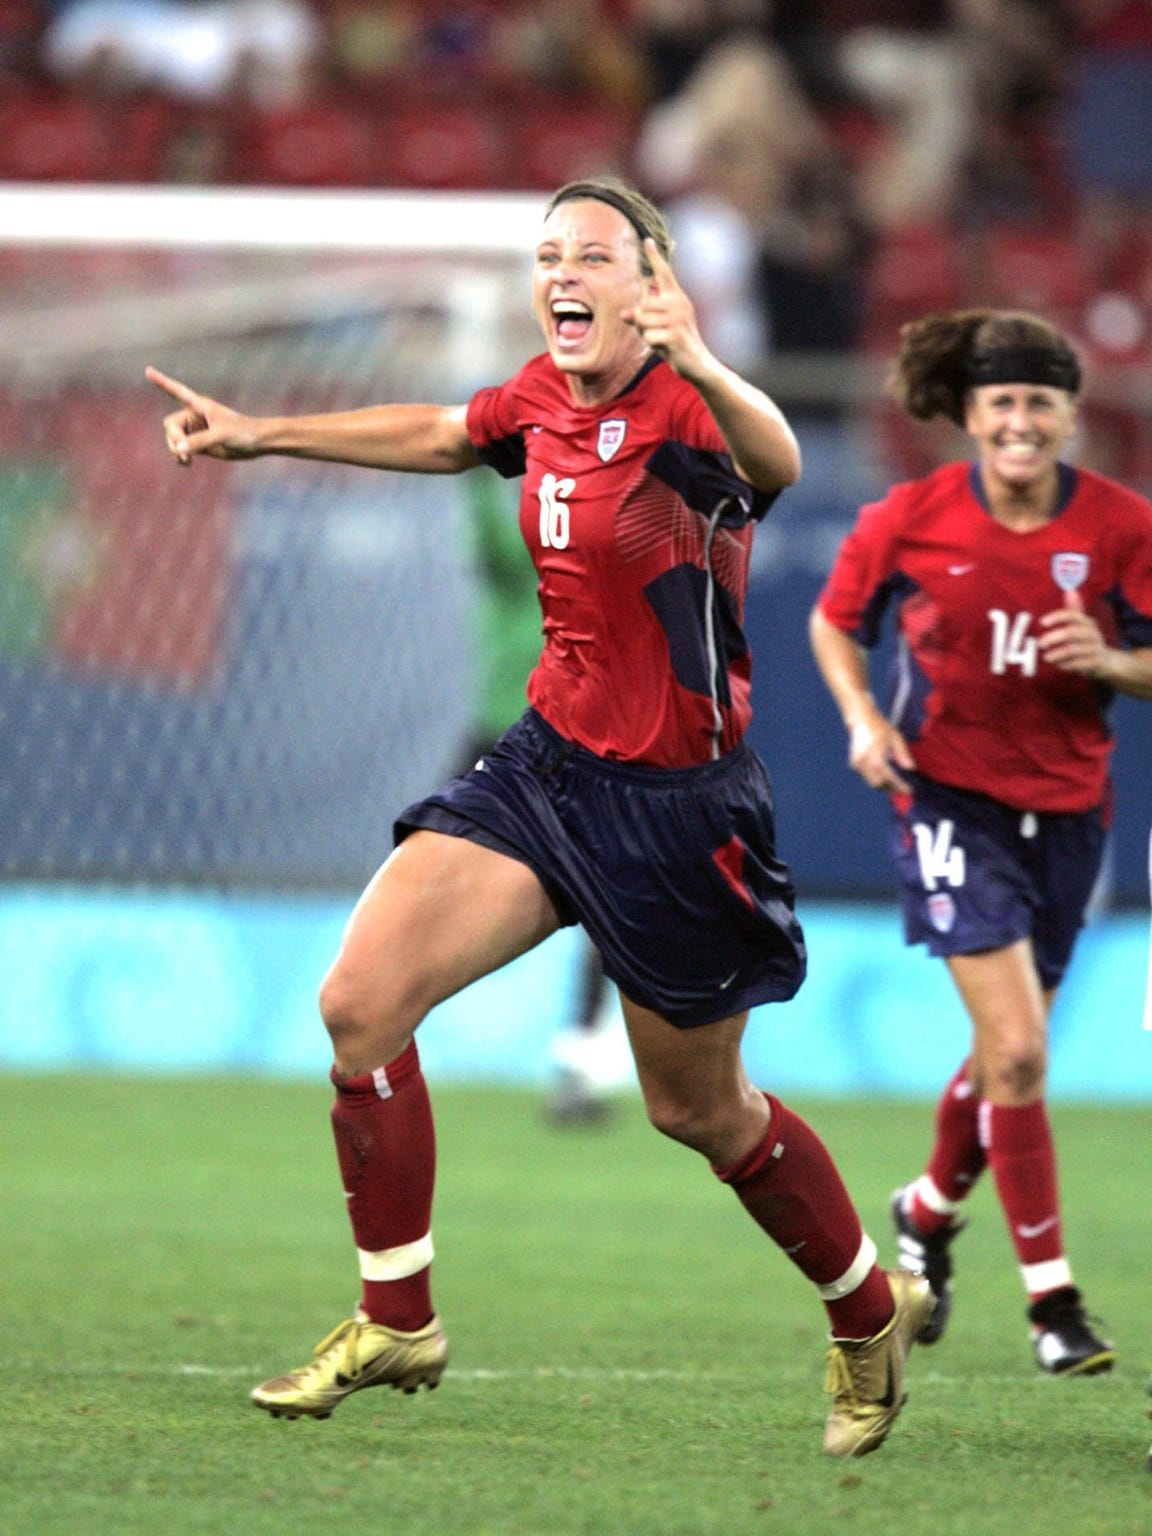 Abby Wambach runs across the field after scoring in overtime of the gold medal match against Brazil in the 2004 Olympics in Athens, Greece.